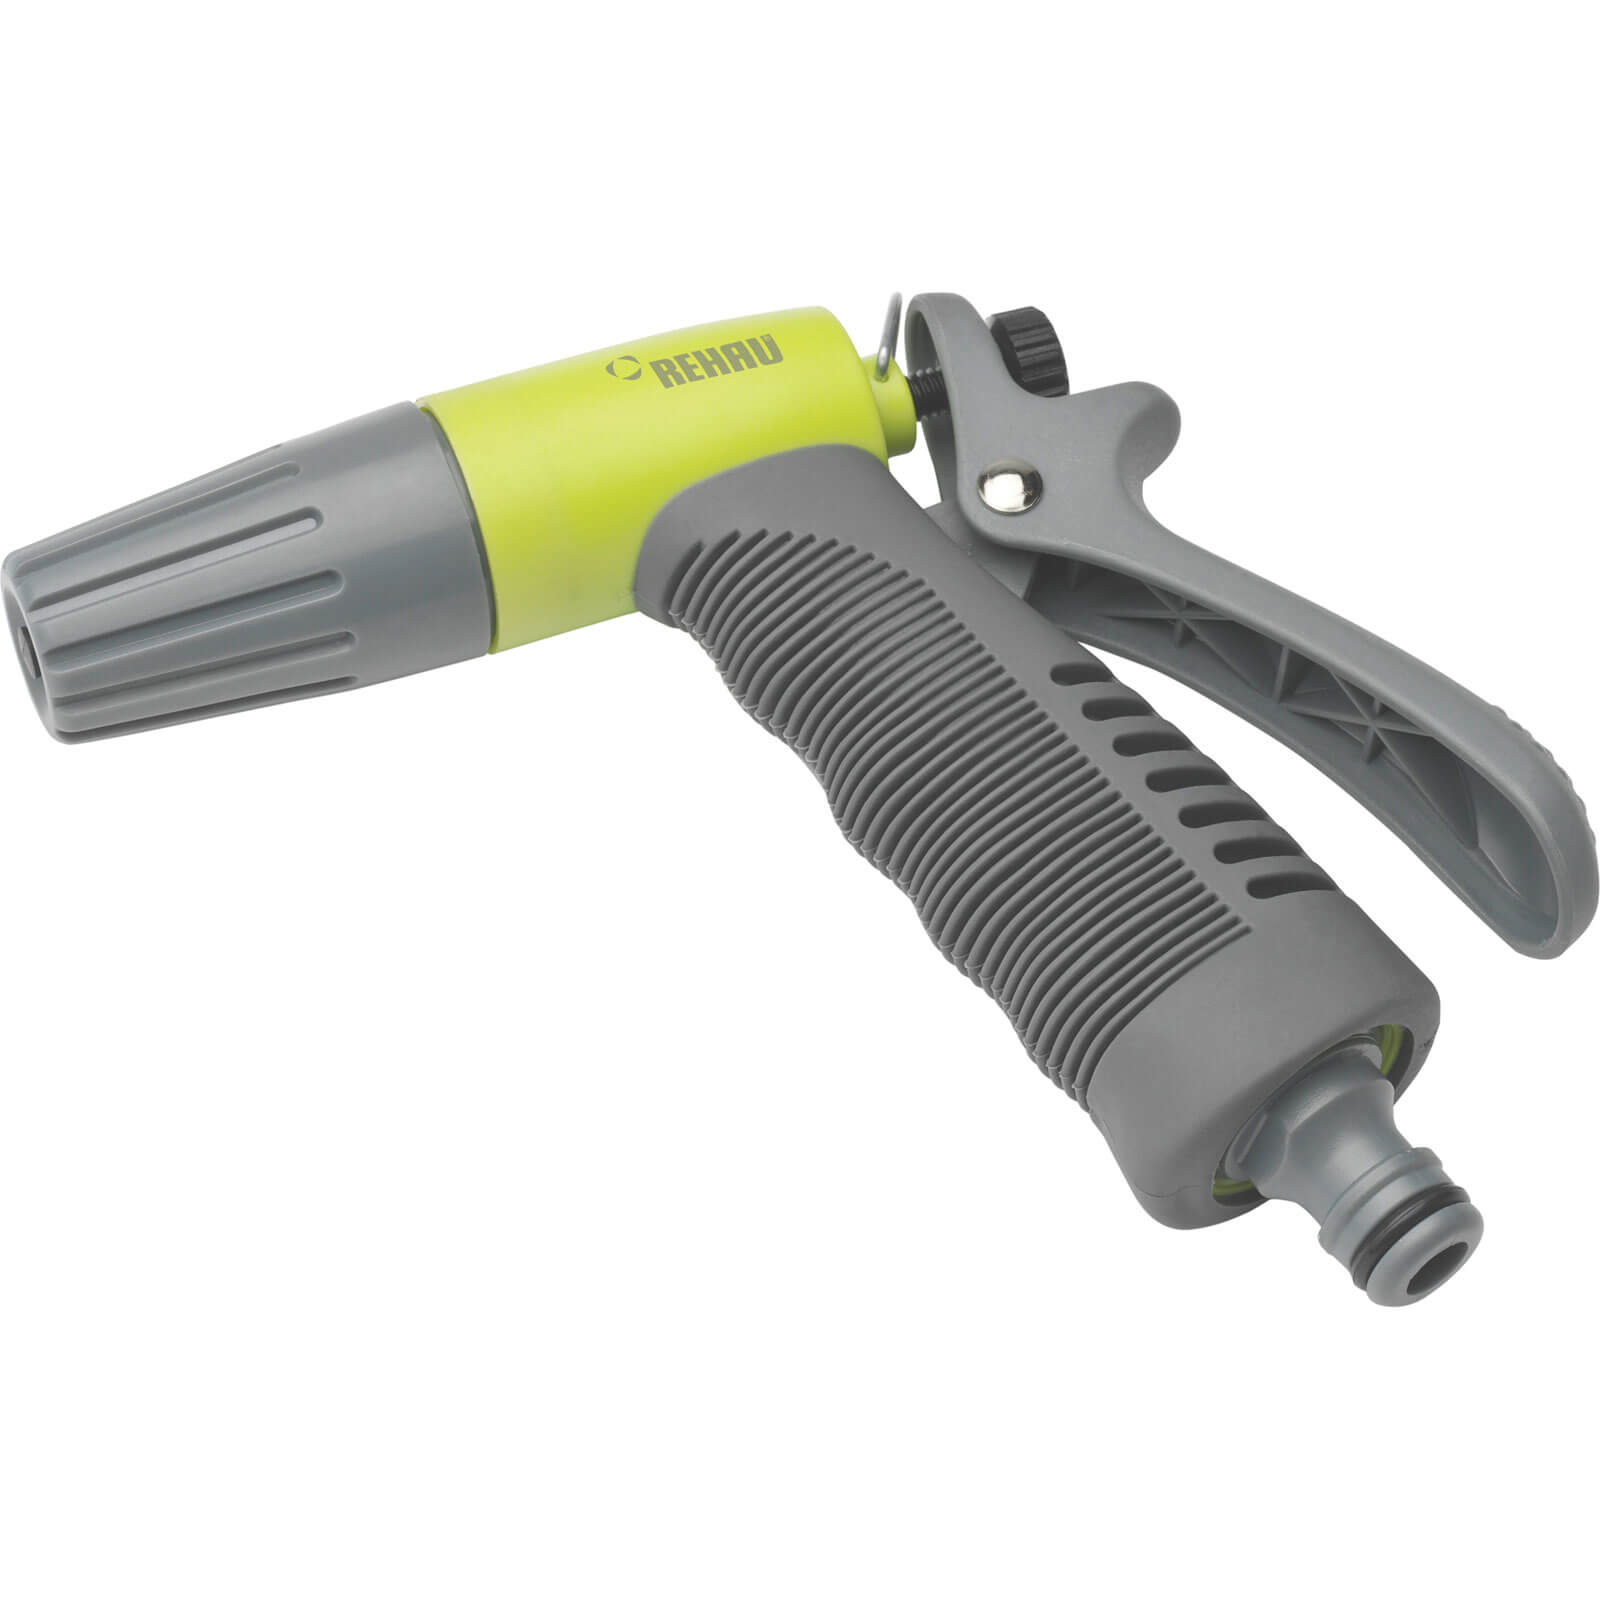 Rehau Adjustable Spray Gun